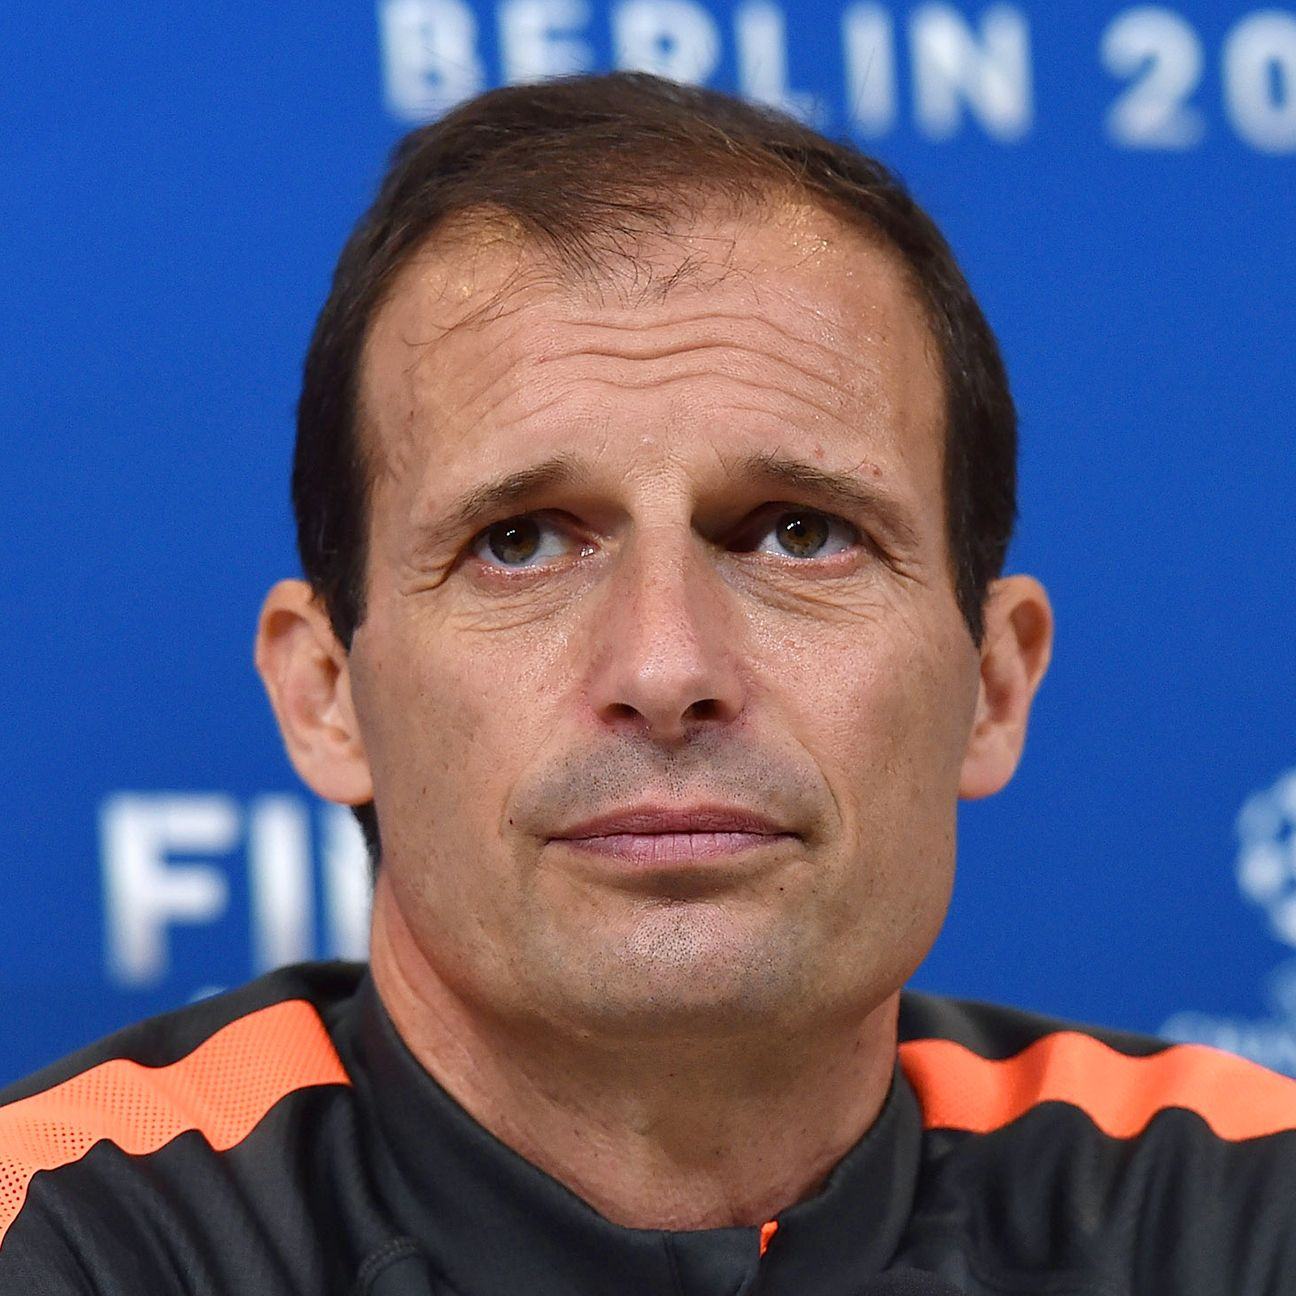 Massimiliano Allegri's Juventus will have to deal with a far more imposing Champions League group this time around.